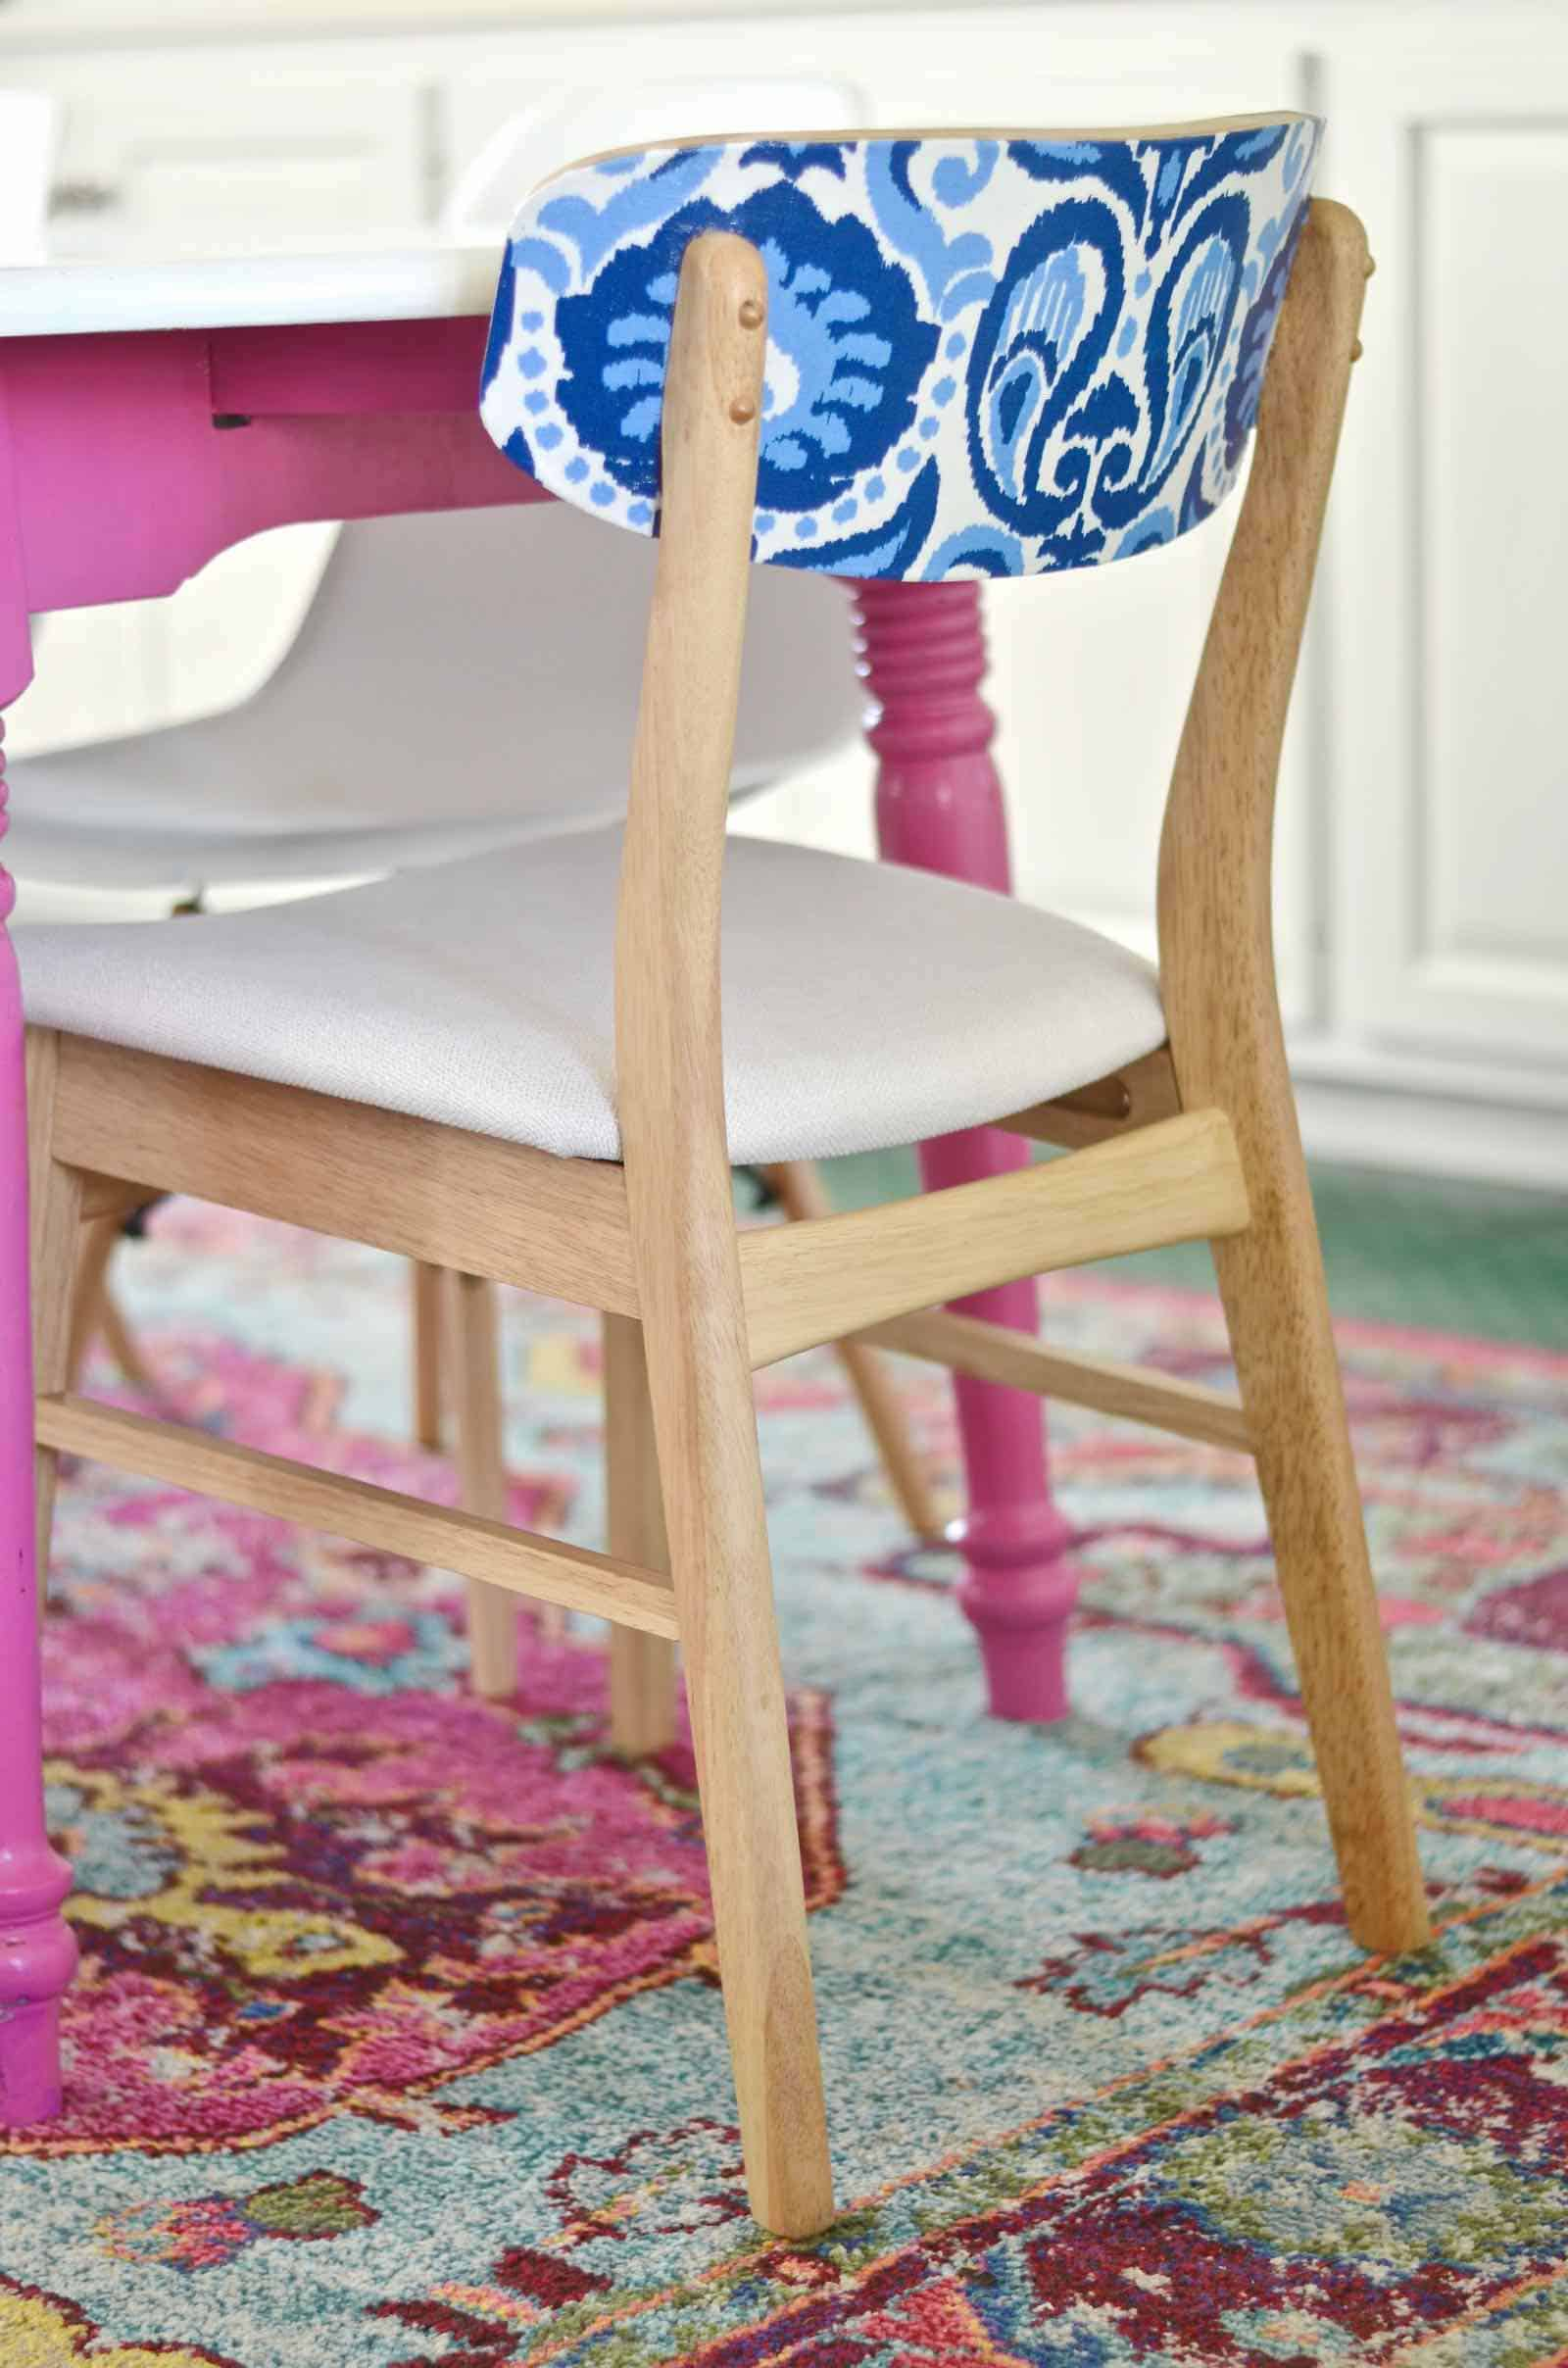 using patterned fabric to update furniture